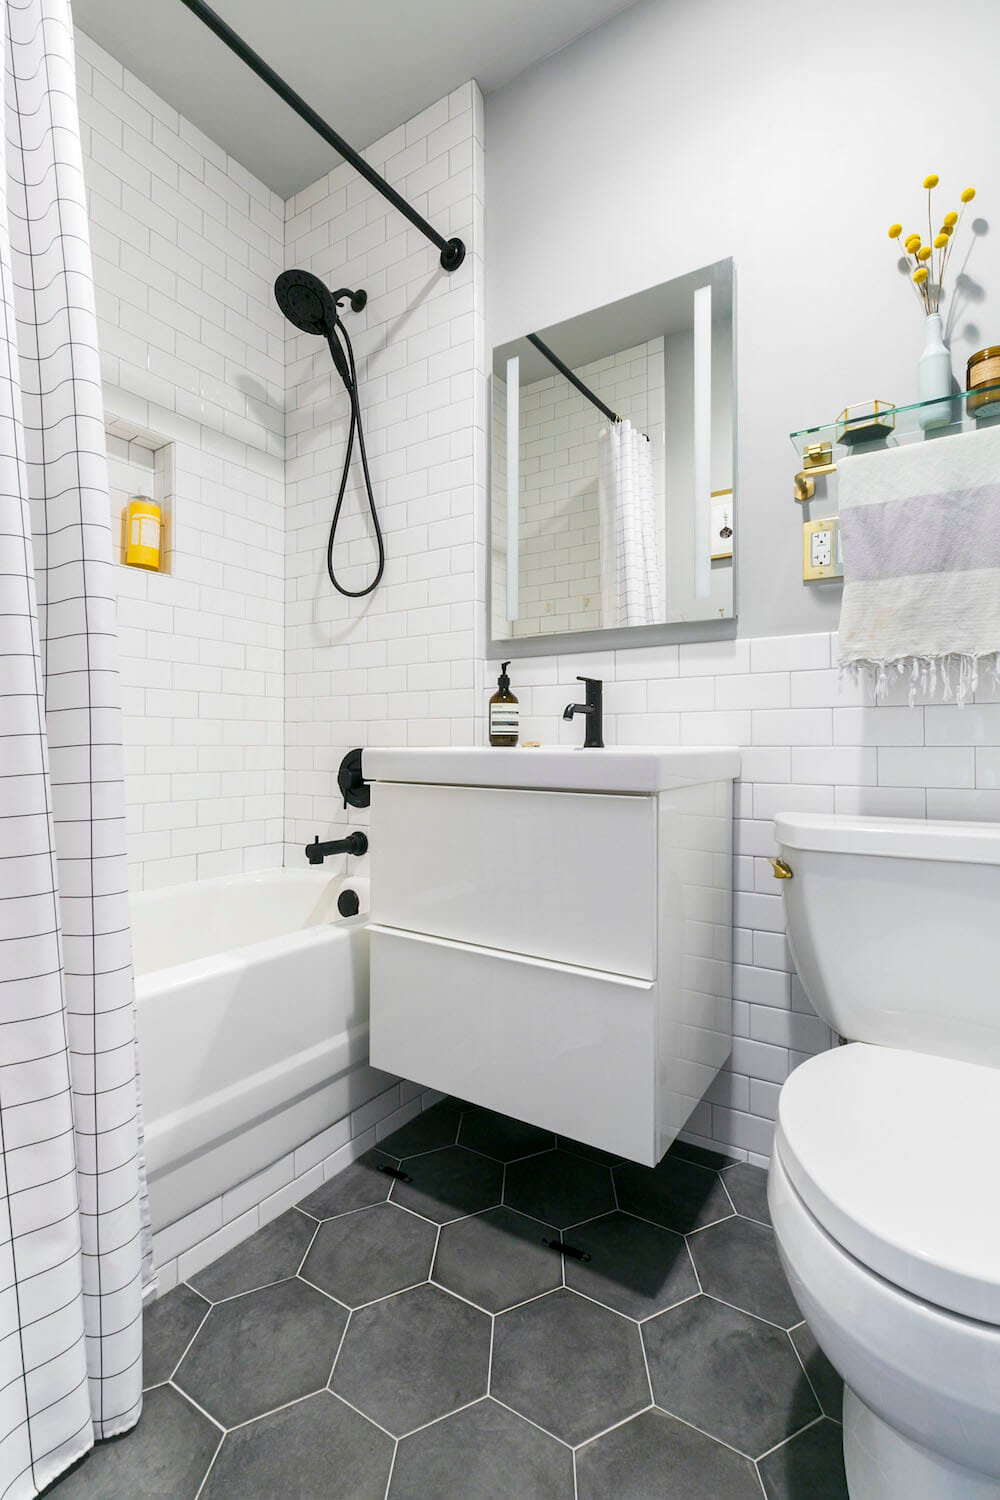 apartment renovation, prospect heights co-op, bathroom, hexagon floor tile, subway tile, matte black accents, lighted medicine cabinet, wall-hung sink